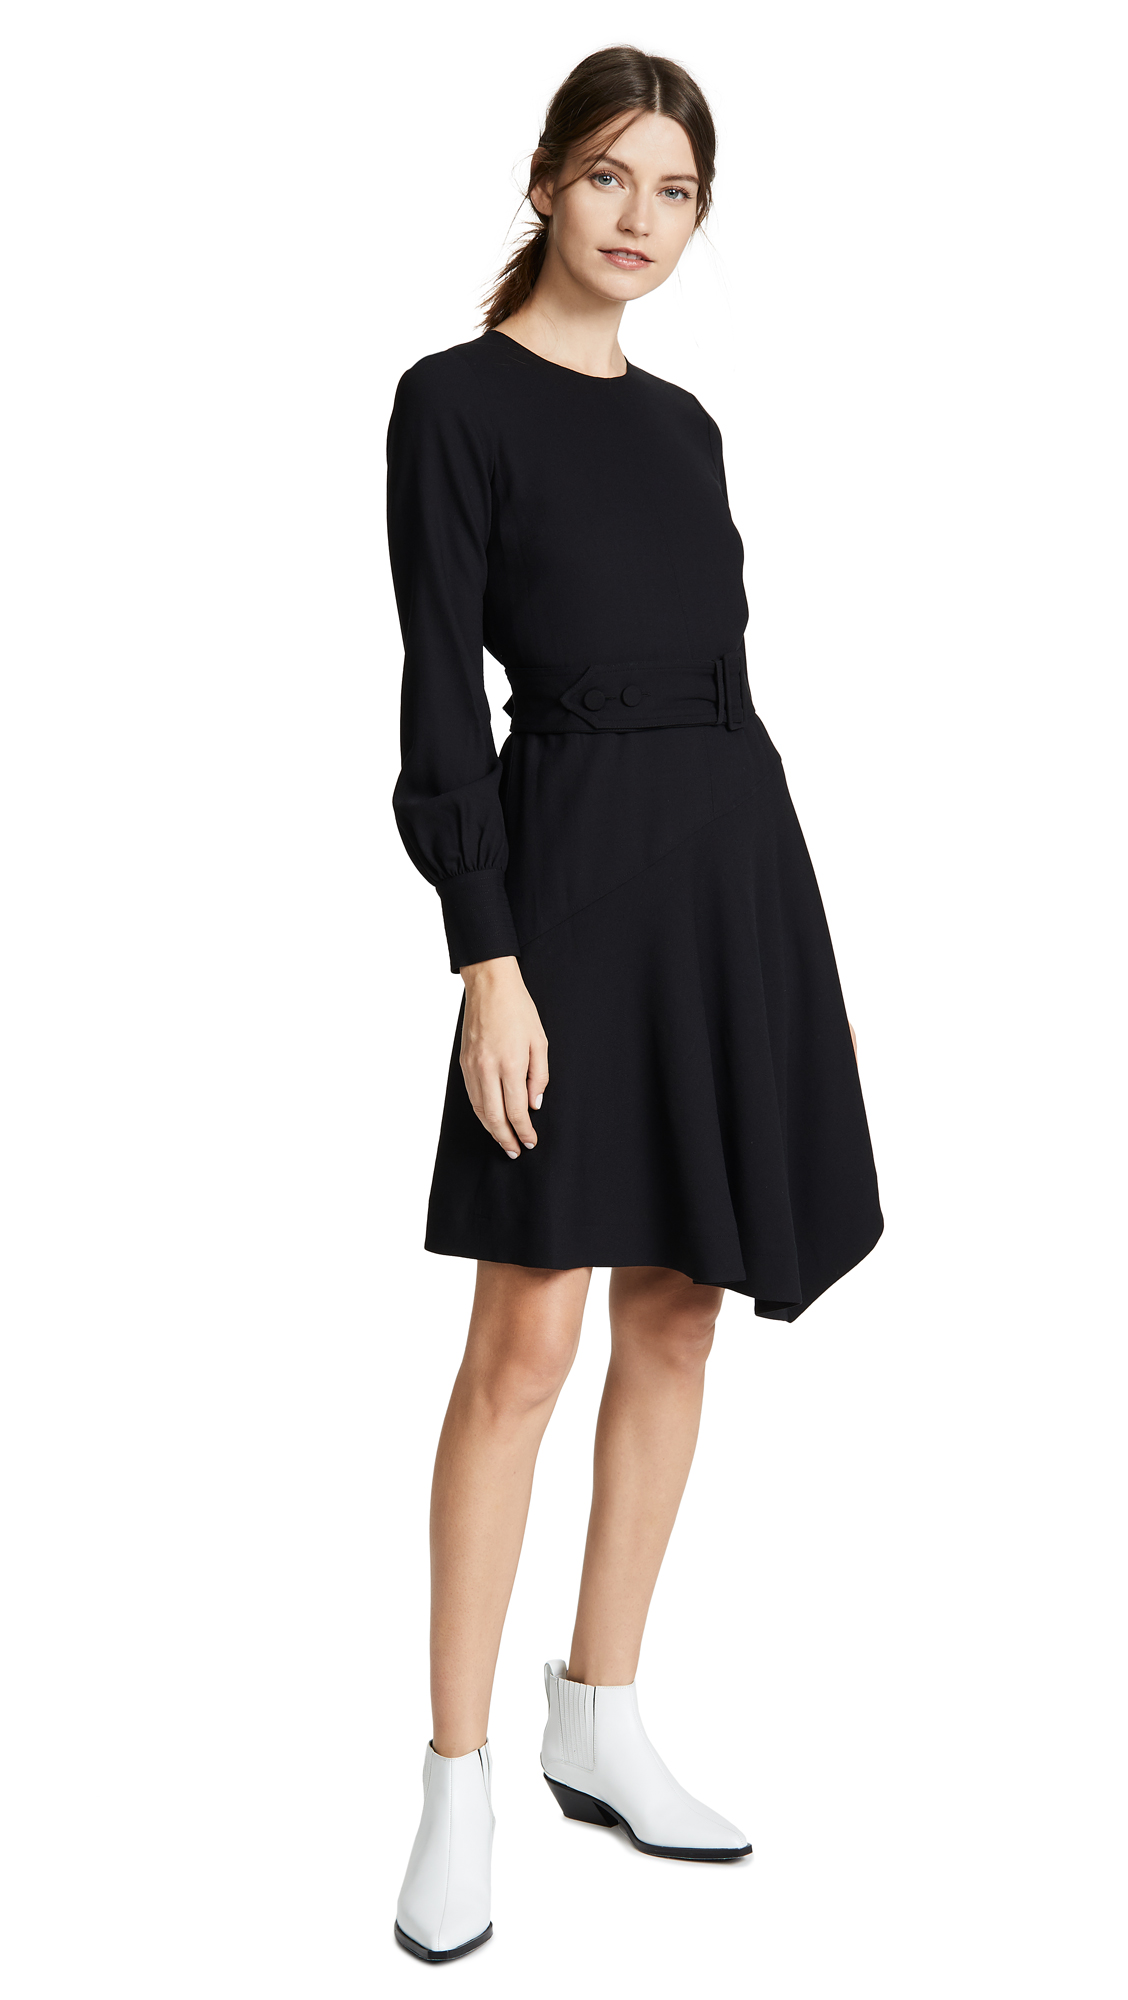 Belted Asymmetrical Dress in Black